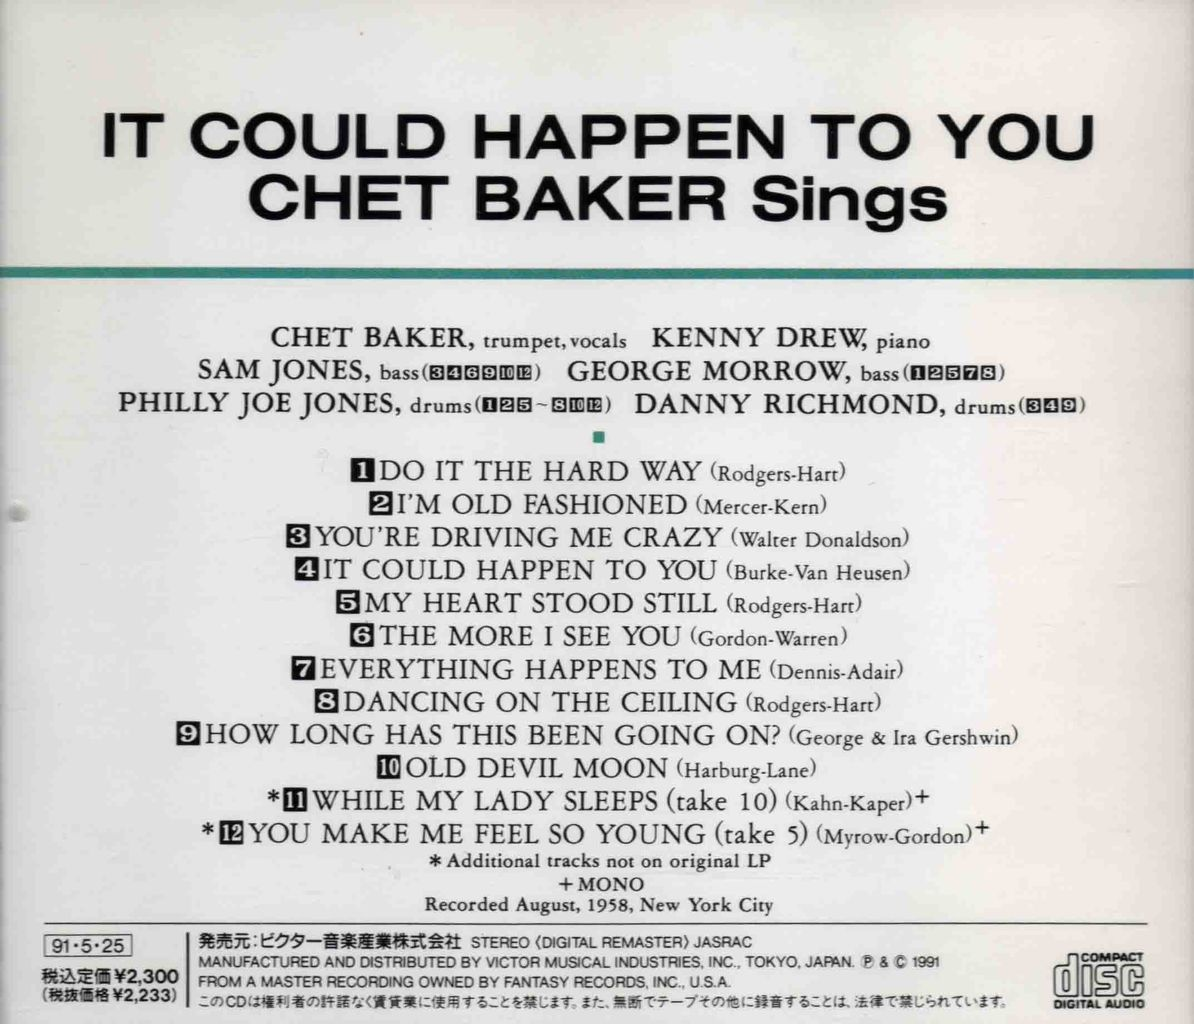 IT COULD HAPPEN TO YOU:CHET BAKER SINGS-2